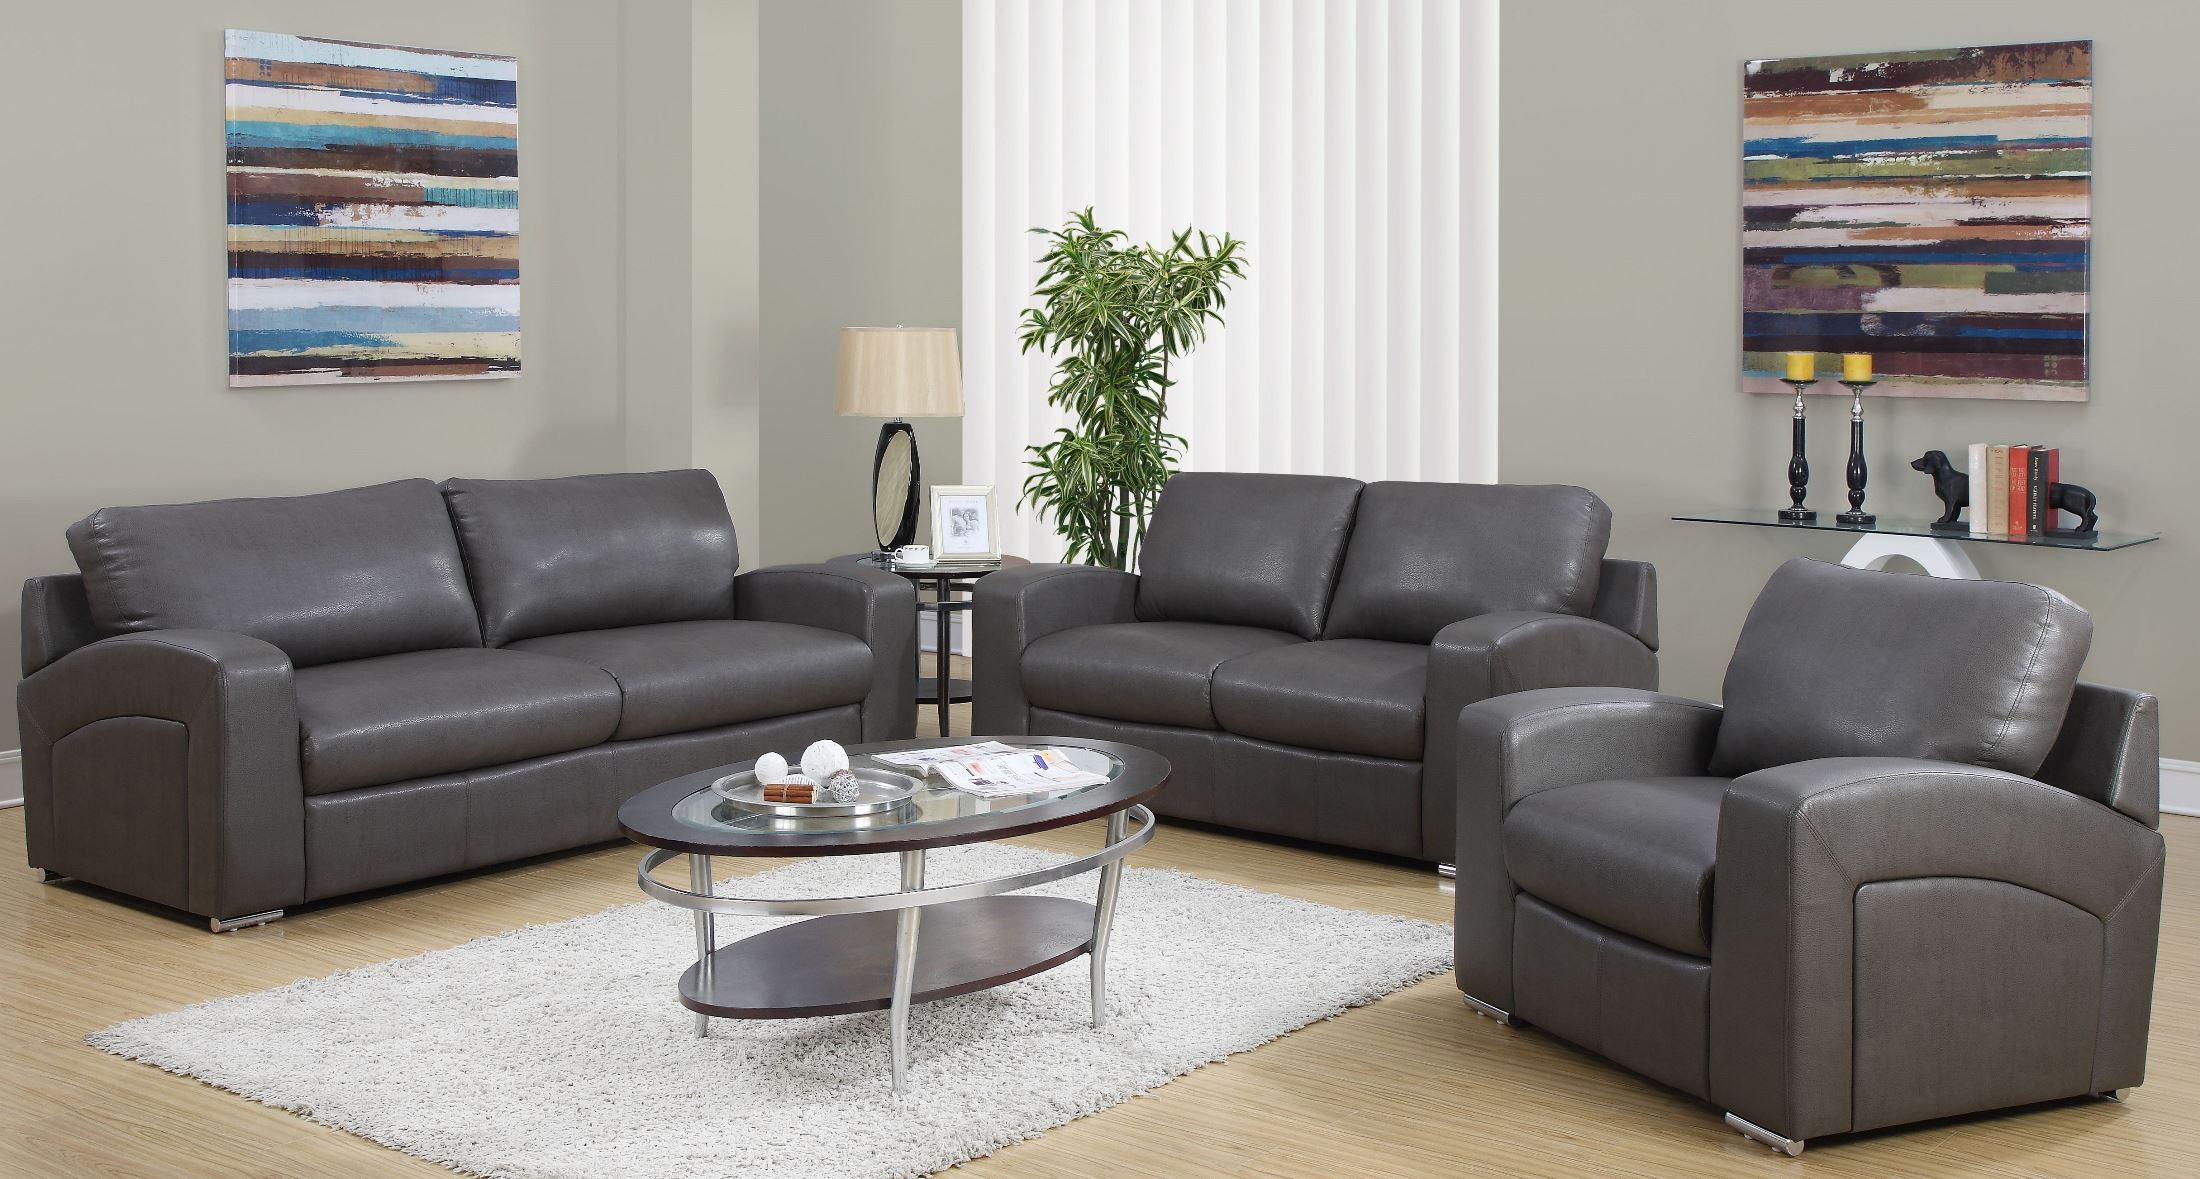 Charcoal Gray Match Living Room Set From Monarch 8503gy Coleman Furniture